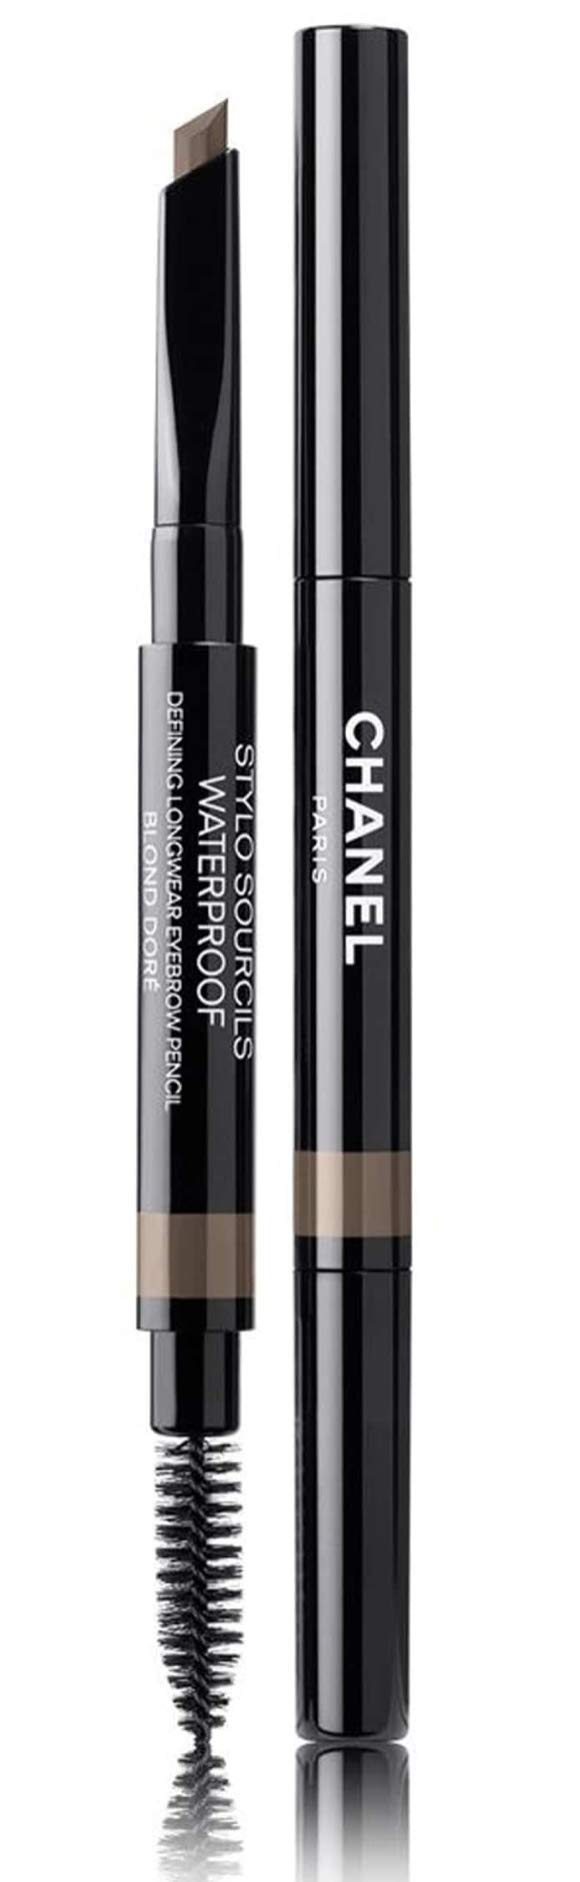 Stylo Sourcils Waterproof (804 Blond Dore) by CHA Cosmetics